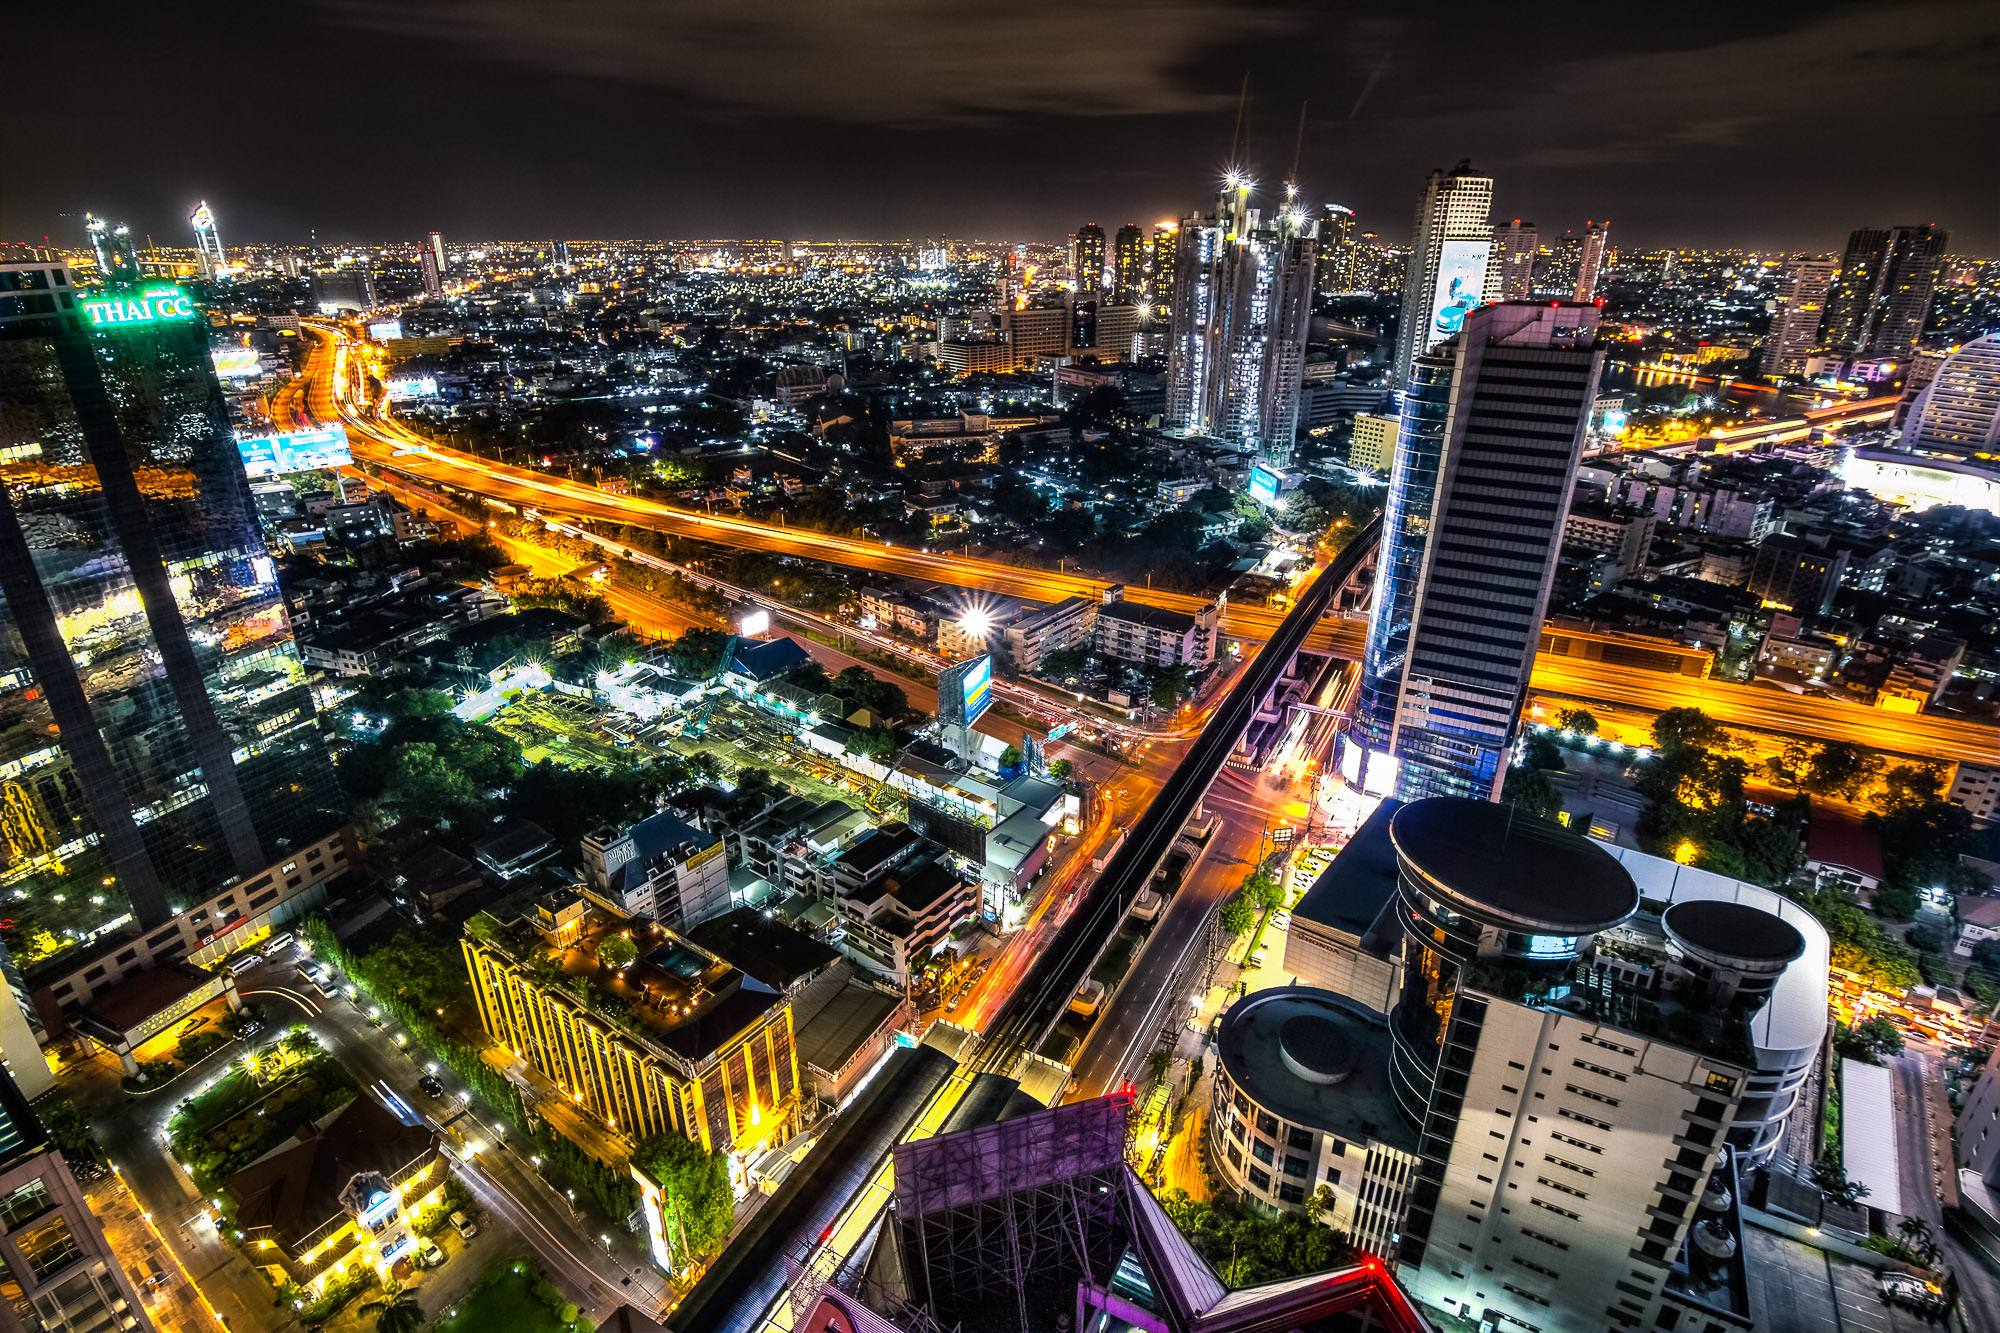 bangkok-from-above-night-cityscape-thailand